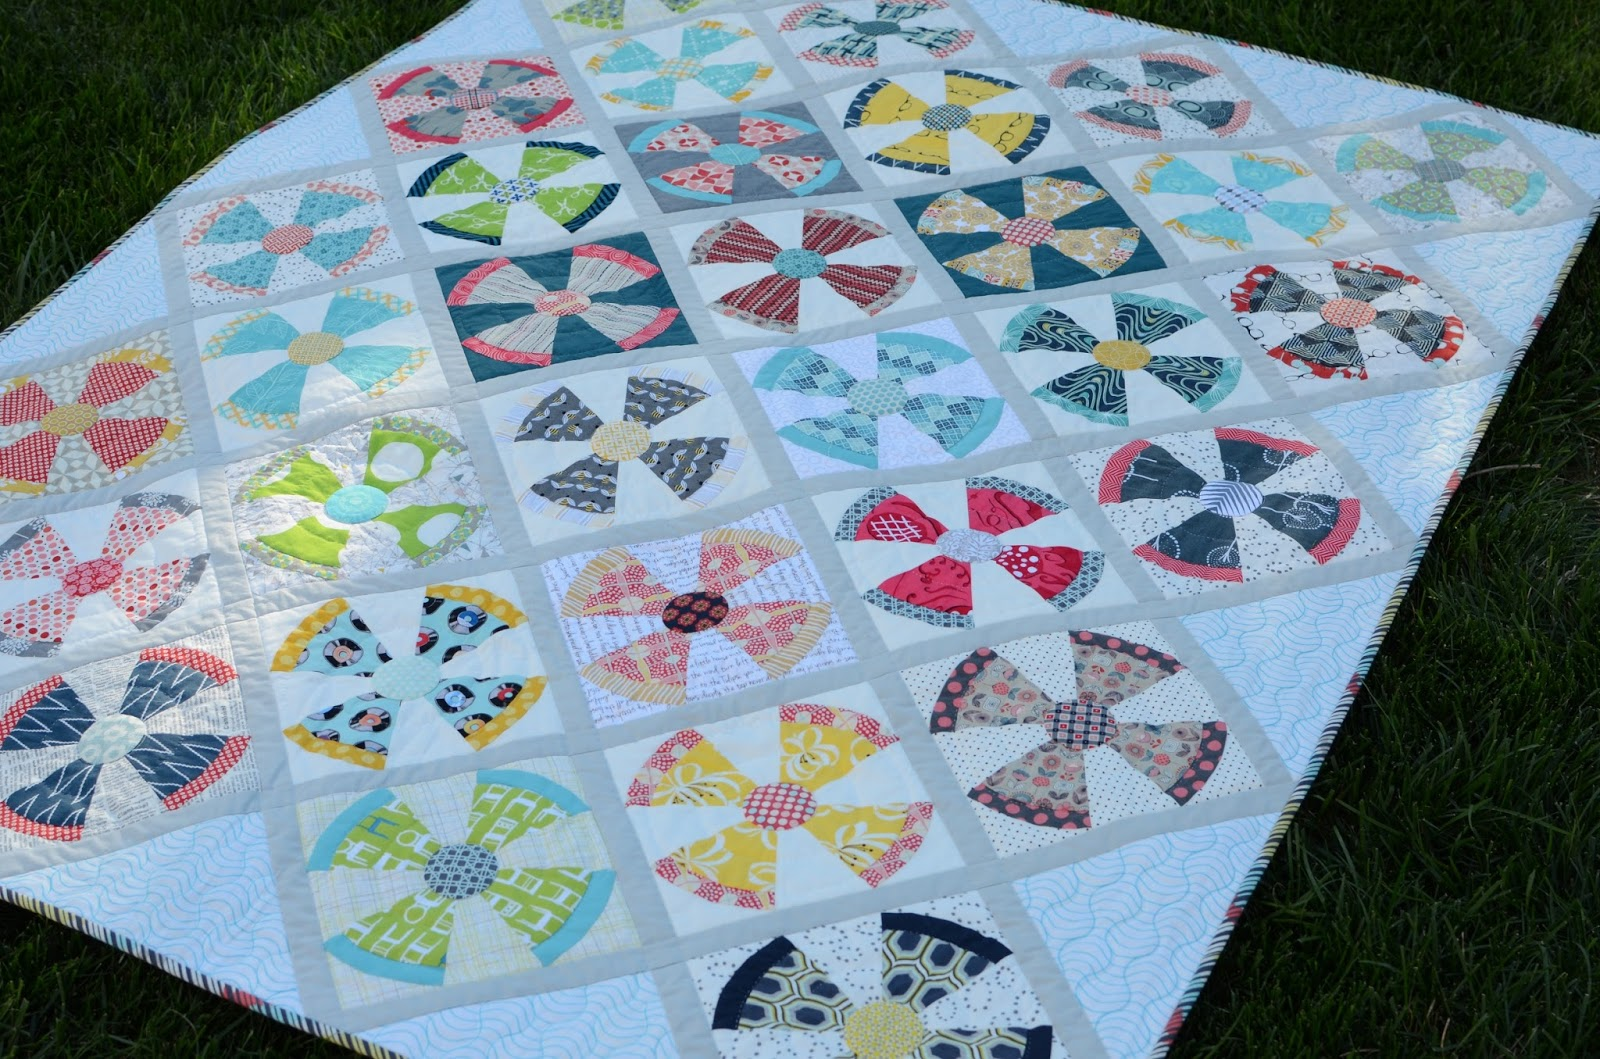 Hyacinth Quilt Designs: Steam Punk Quilt : steampunk quilt pattern - Adamdwight.com